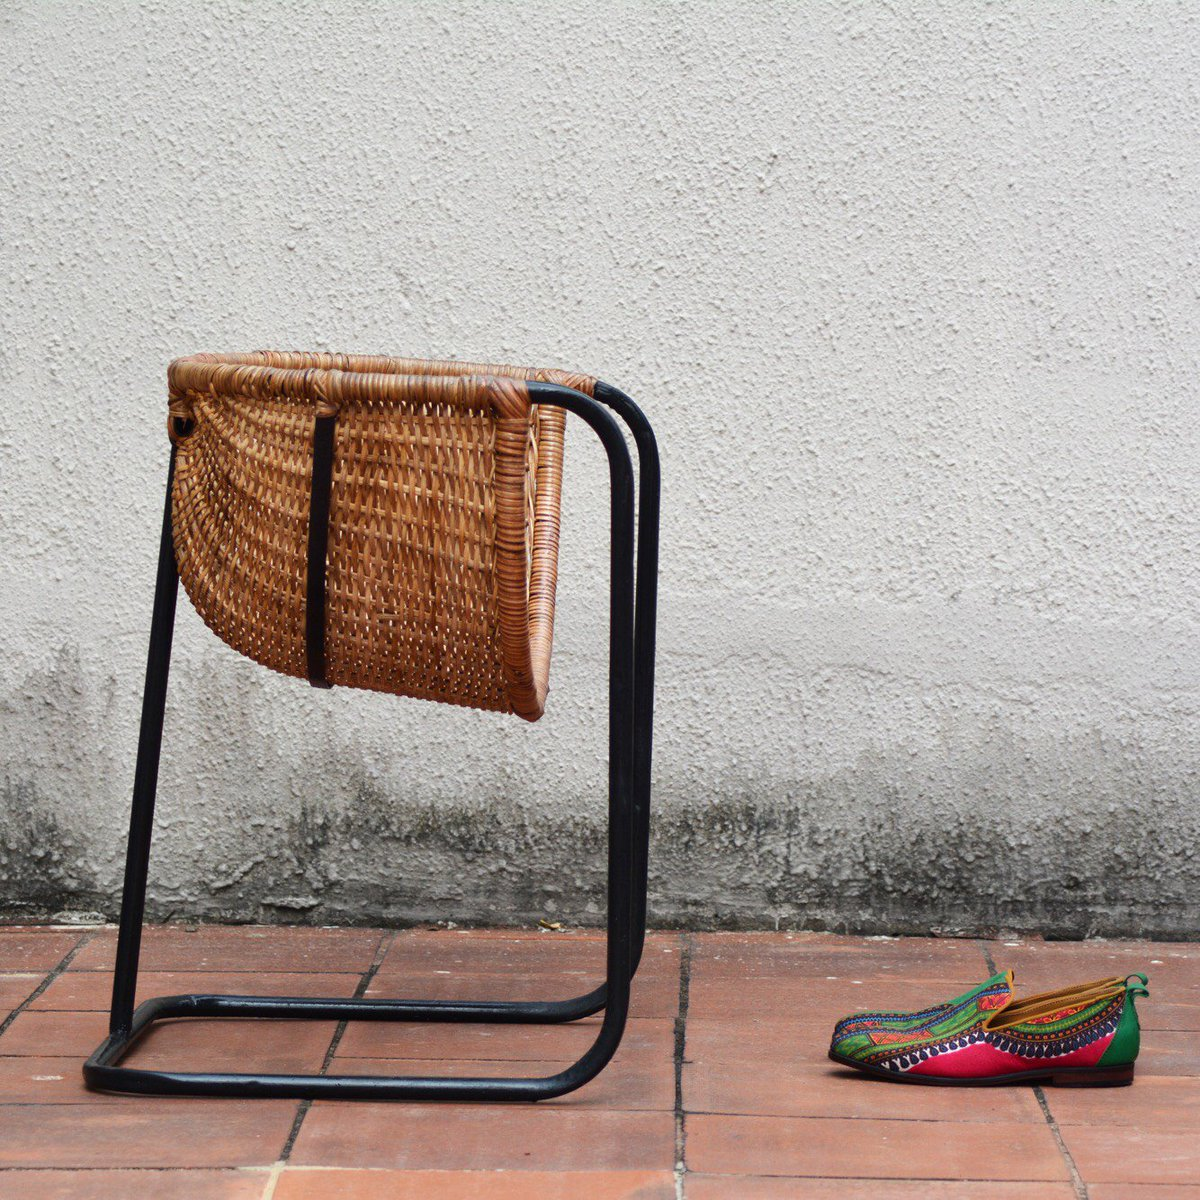 swing chair lagos modern wood funfere koroye on twitter a i designed in nigeria has been picked up by madedotcom london for their next talentlab collection contract signed